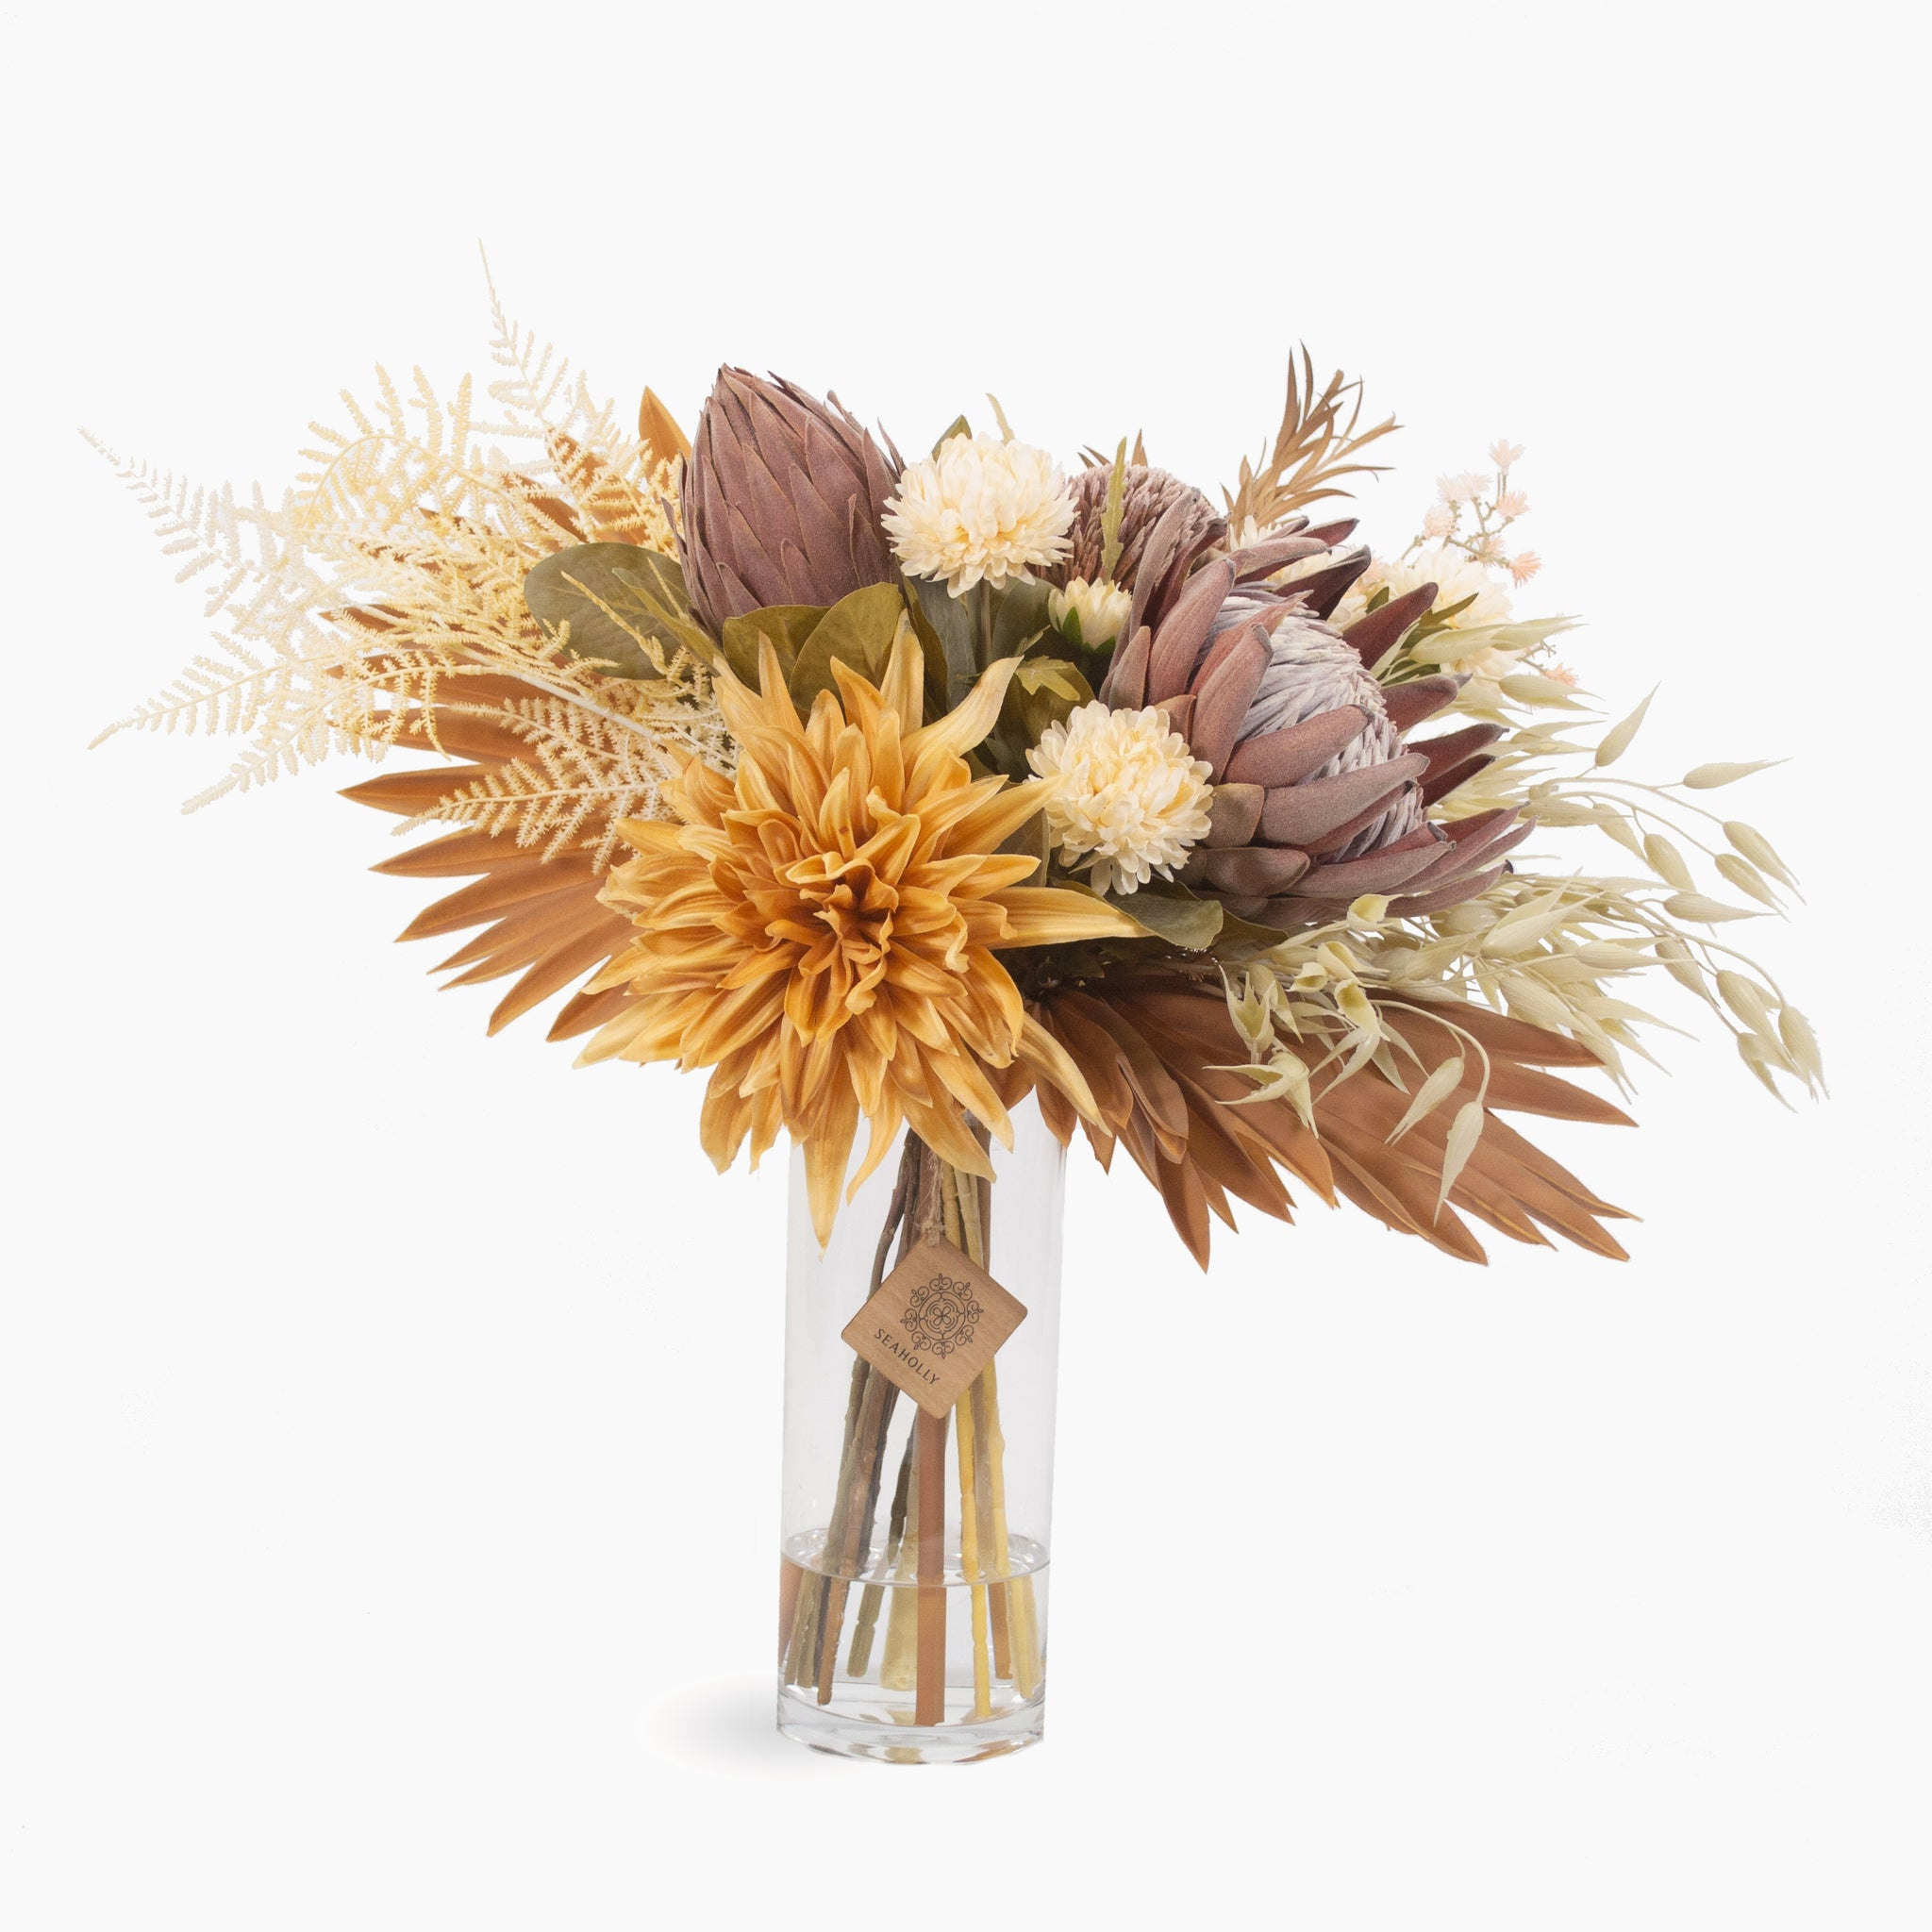 Preserved king protea, dahlia, banksia and mixed colour foliages